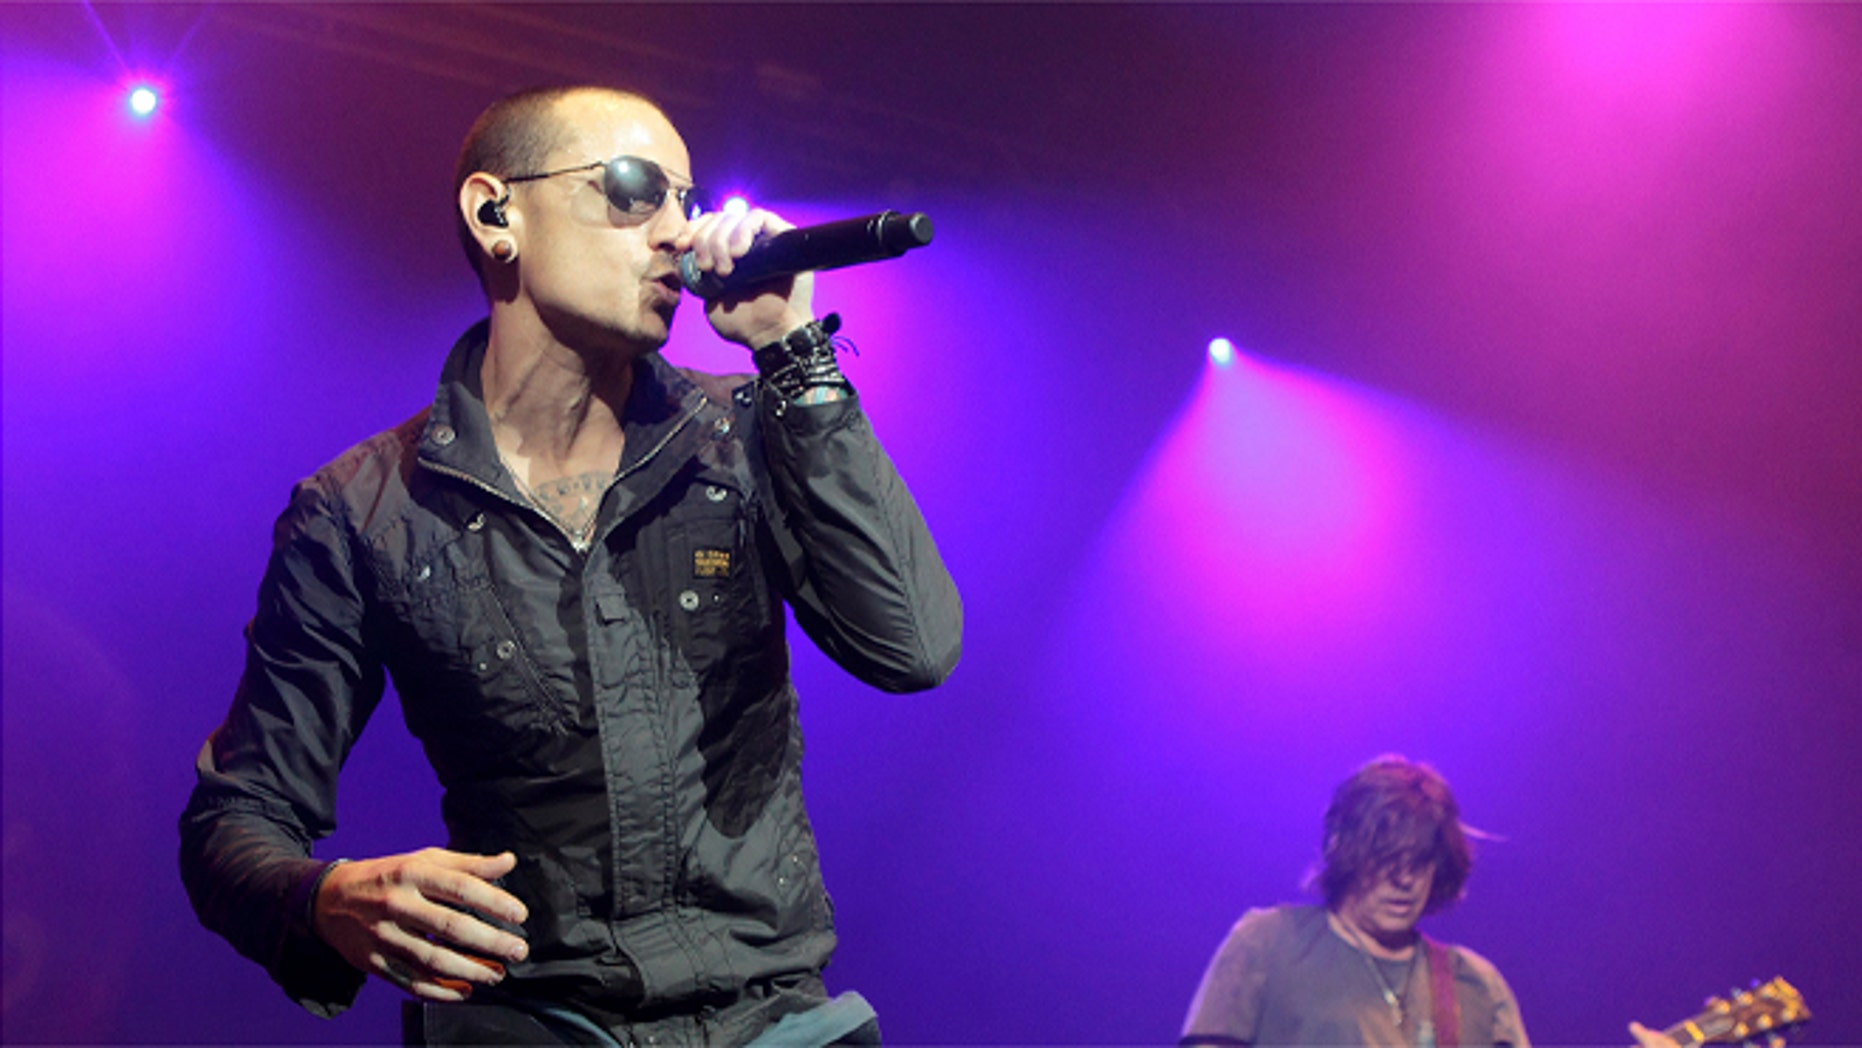 Linkin Park canceled its North American tour after lead singer Chester Bennington was found dead by hanging.